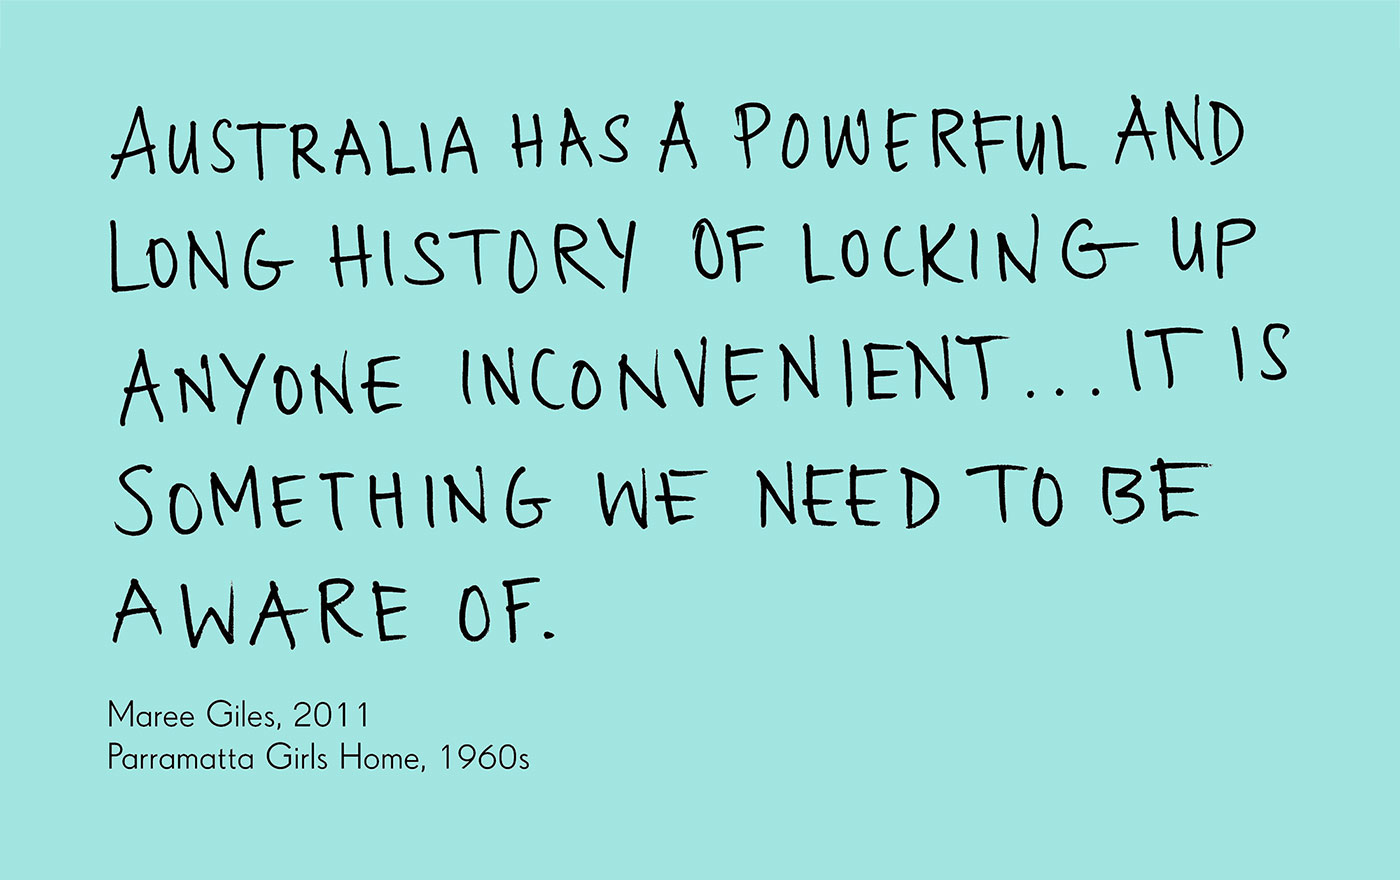 Exhibition graphic panel that reads: 'Australia has a powerful and long history of locking up anyone inconvenient ... it is something we need to be aware of', attributed to 'Maree Giles, 2011, Parramatta Girls Home, 1960s'. - click to view larger image